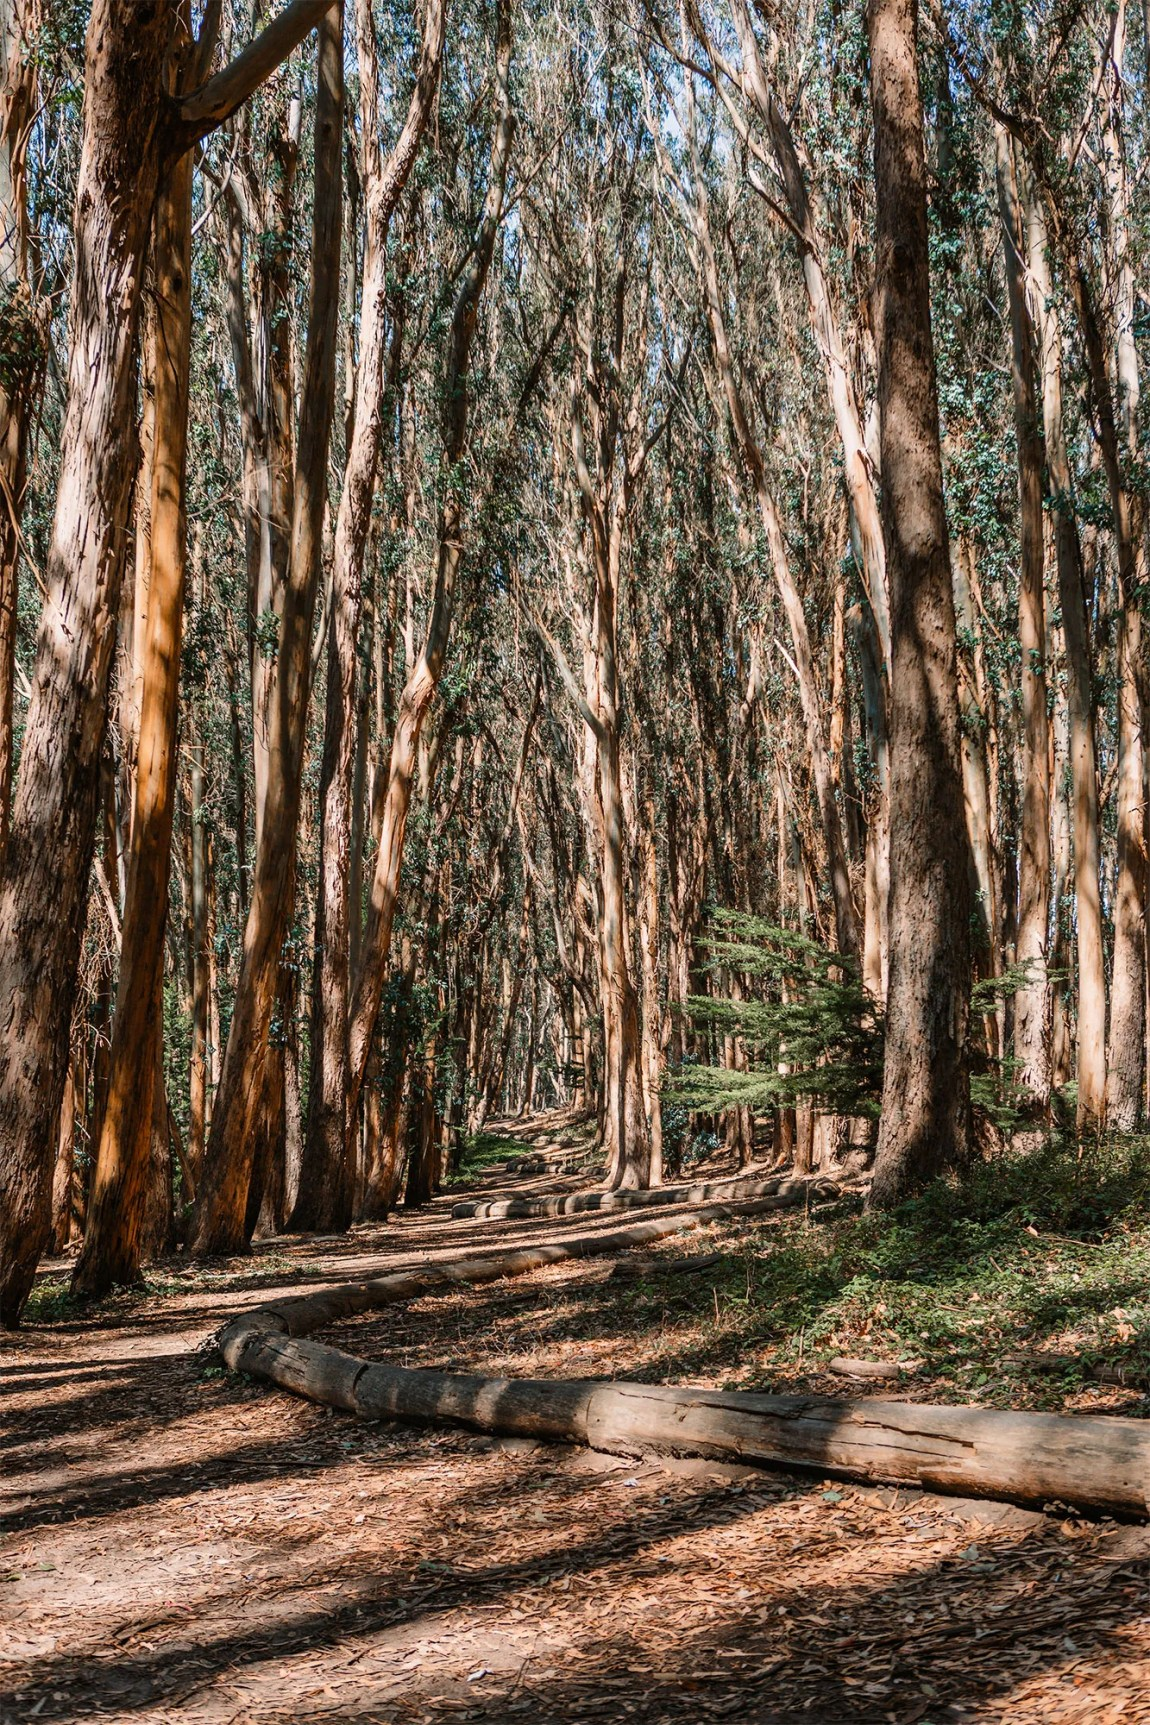 Andy Goldsworthy's Wood Line in Presidio Park San Francisco, California | Local Love and Wanderlust